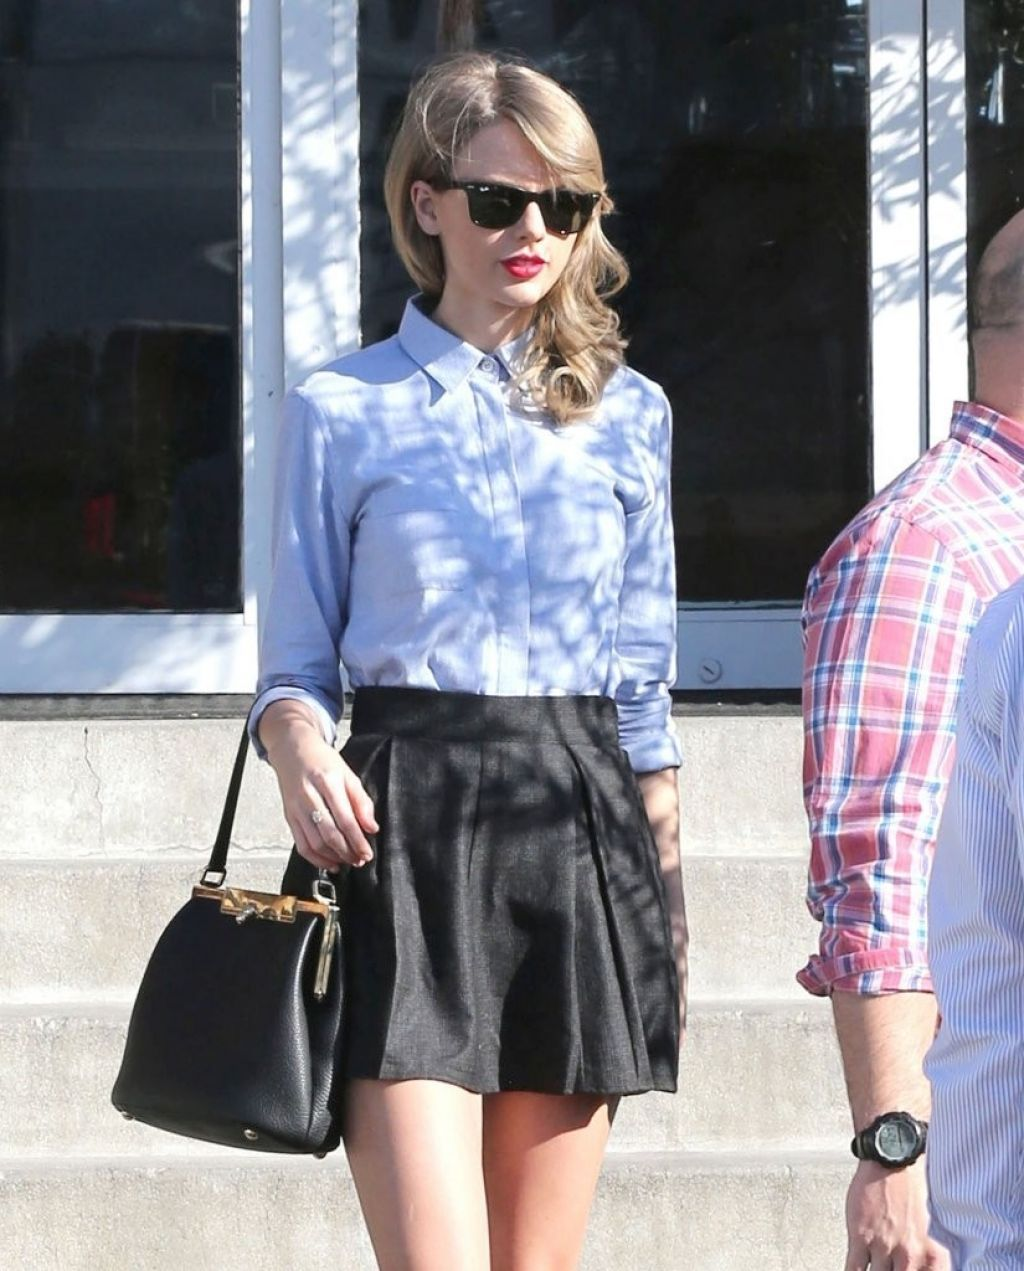 taylor swift street style culver city january 2014 street style day wear pinterest